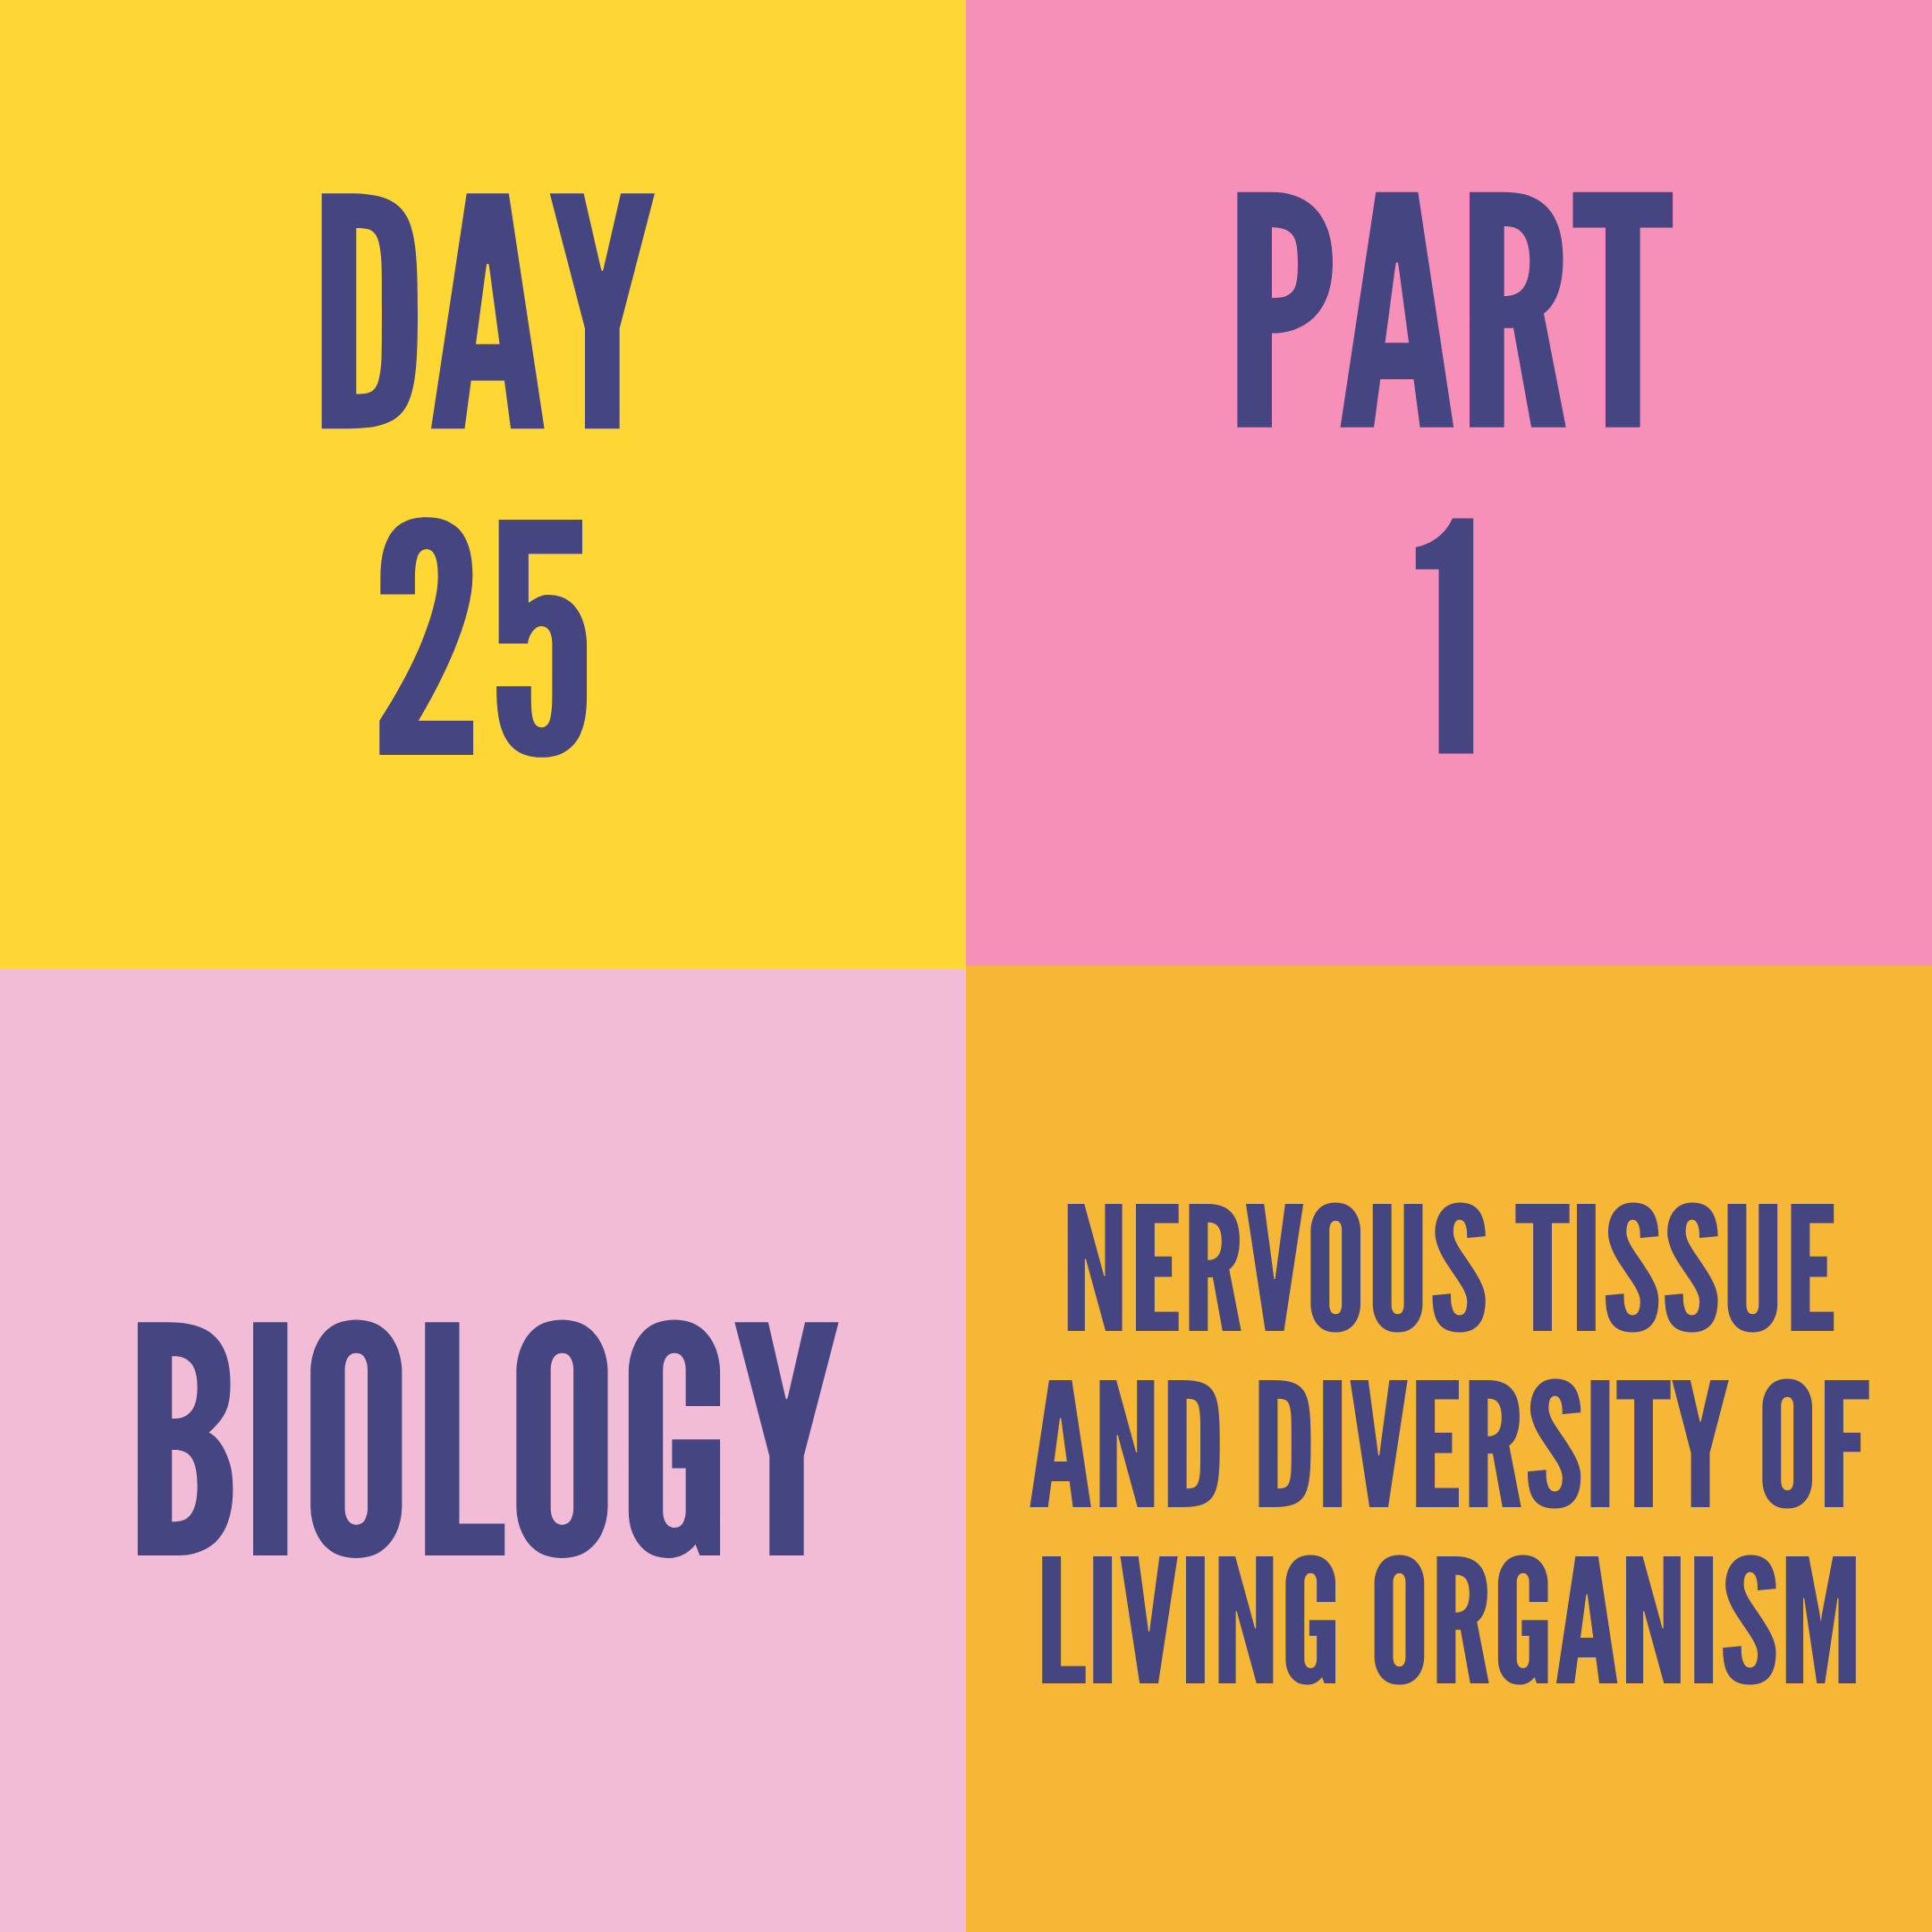 DAY-25 PART-1 NERVOUS TISSUE AND DIVERSITY OF LIVING ORGANISM